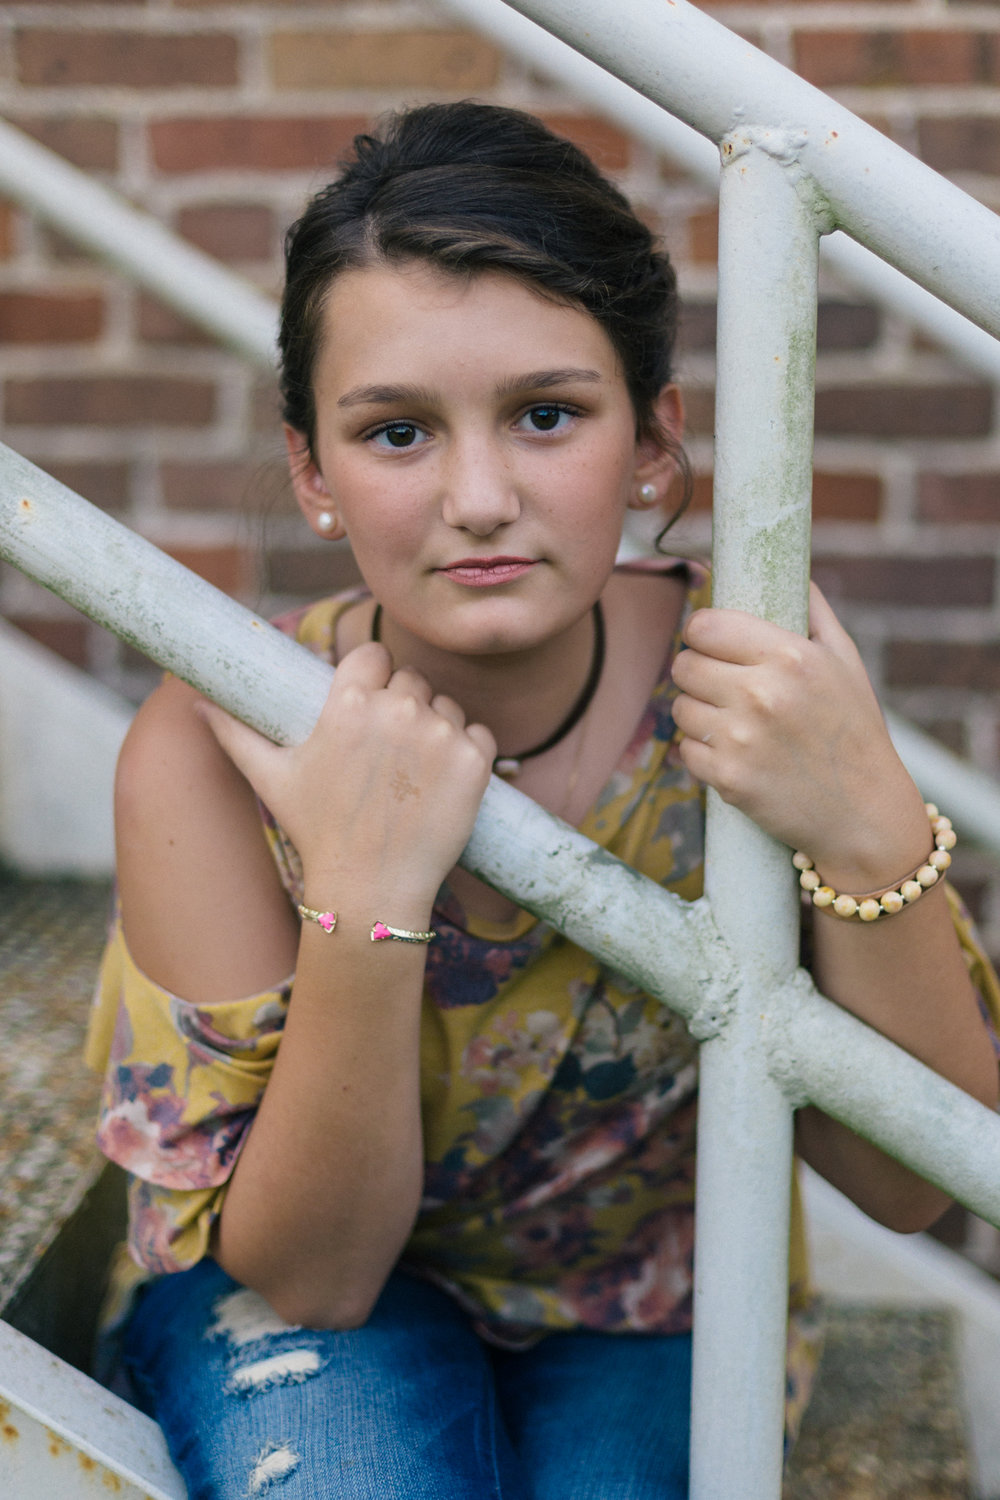 Franklinton, Louisiana portrait photography for tweens and kids by Chris Ginn Photography.